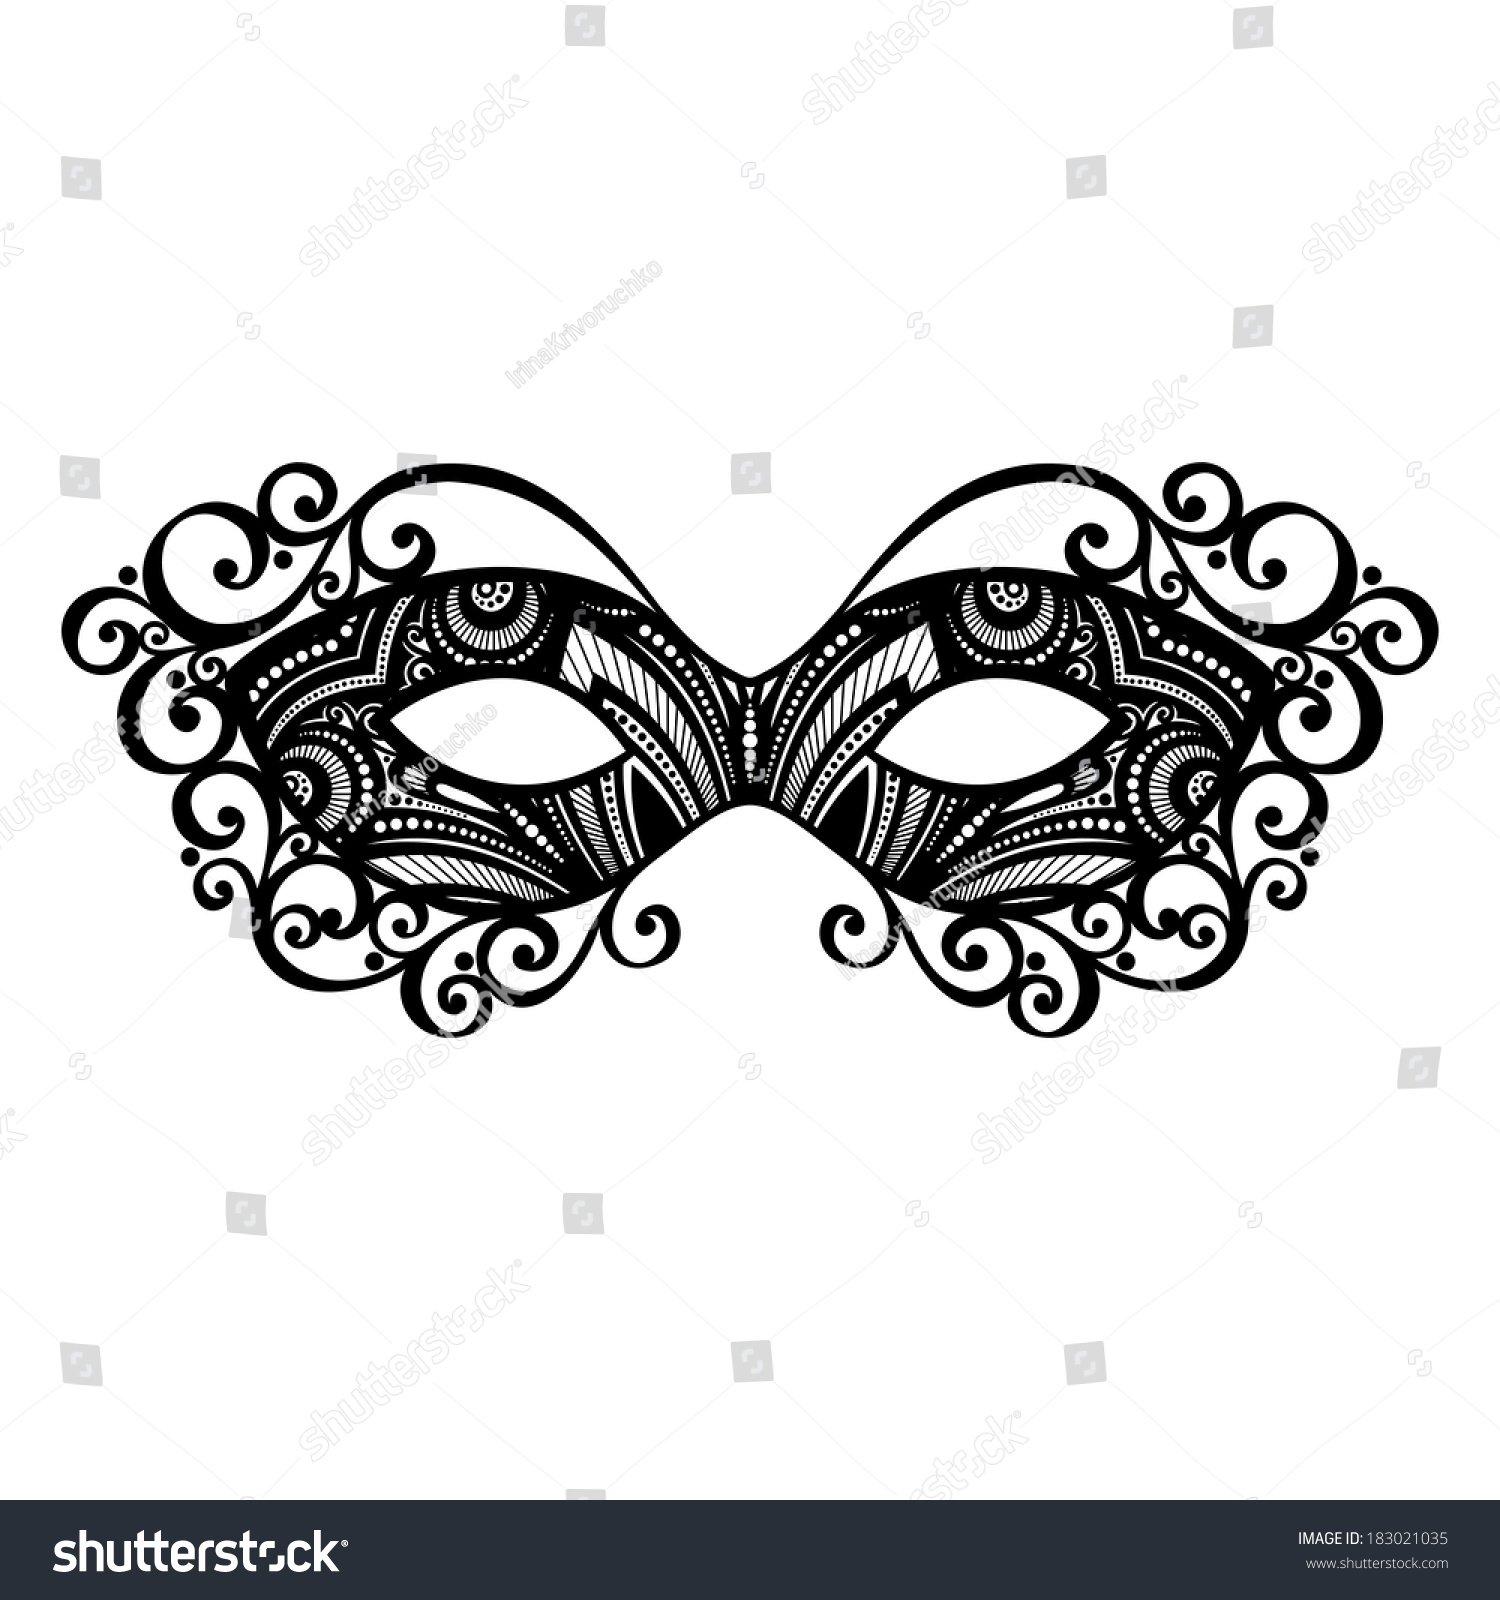 Beautiful Masquerade Mask Patterned Design Stock Illustration ...